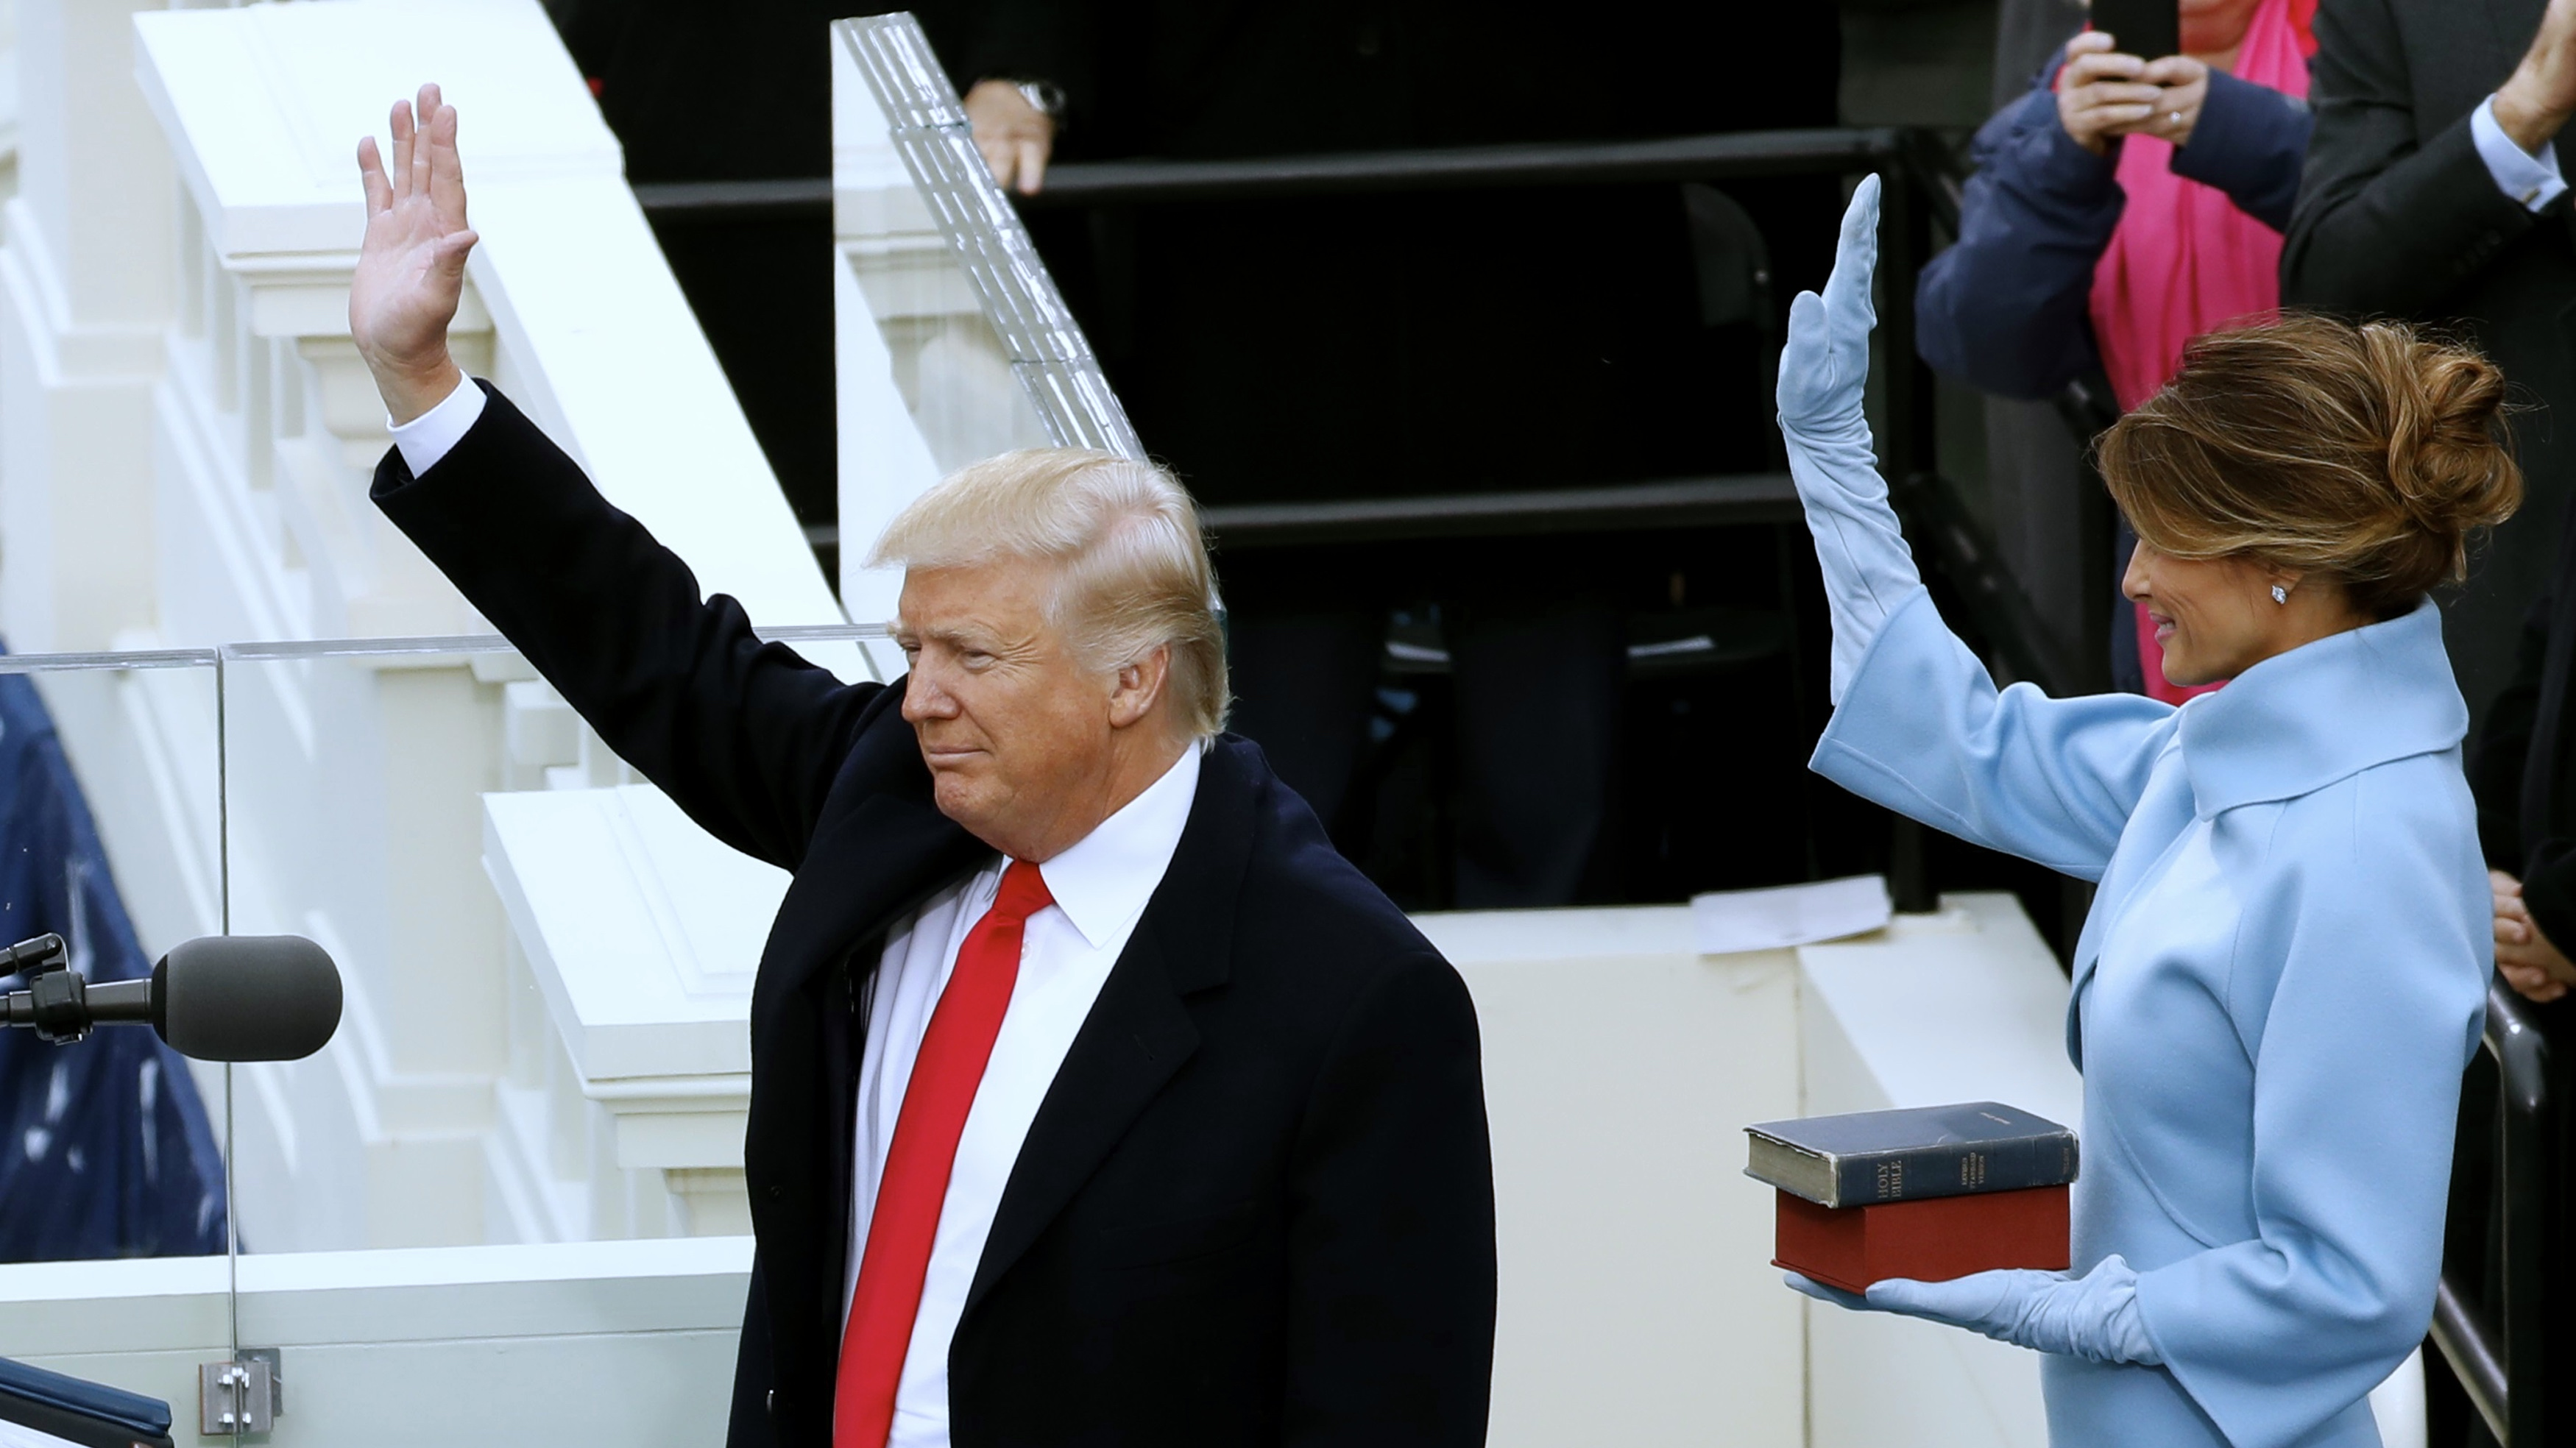 Donald Trump and his wife Melania wave to crowd after he was sworn in as the 45th president.